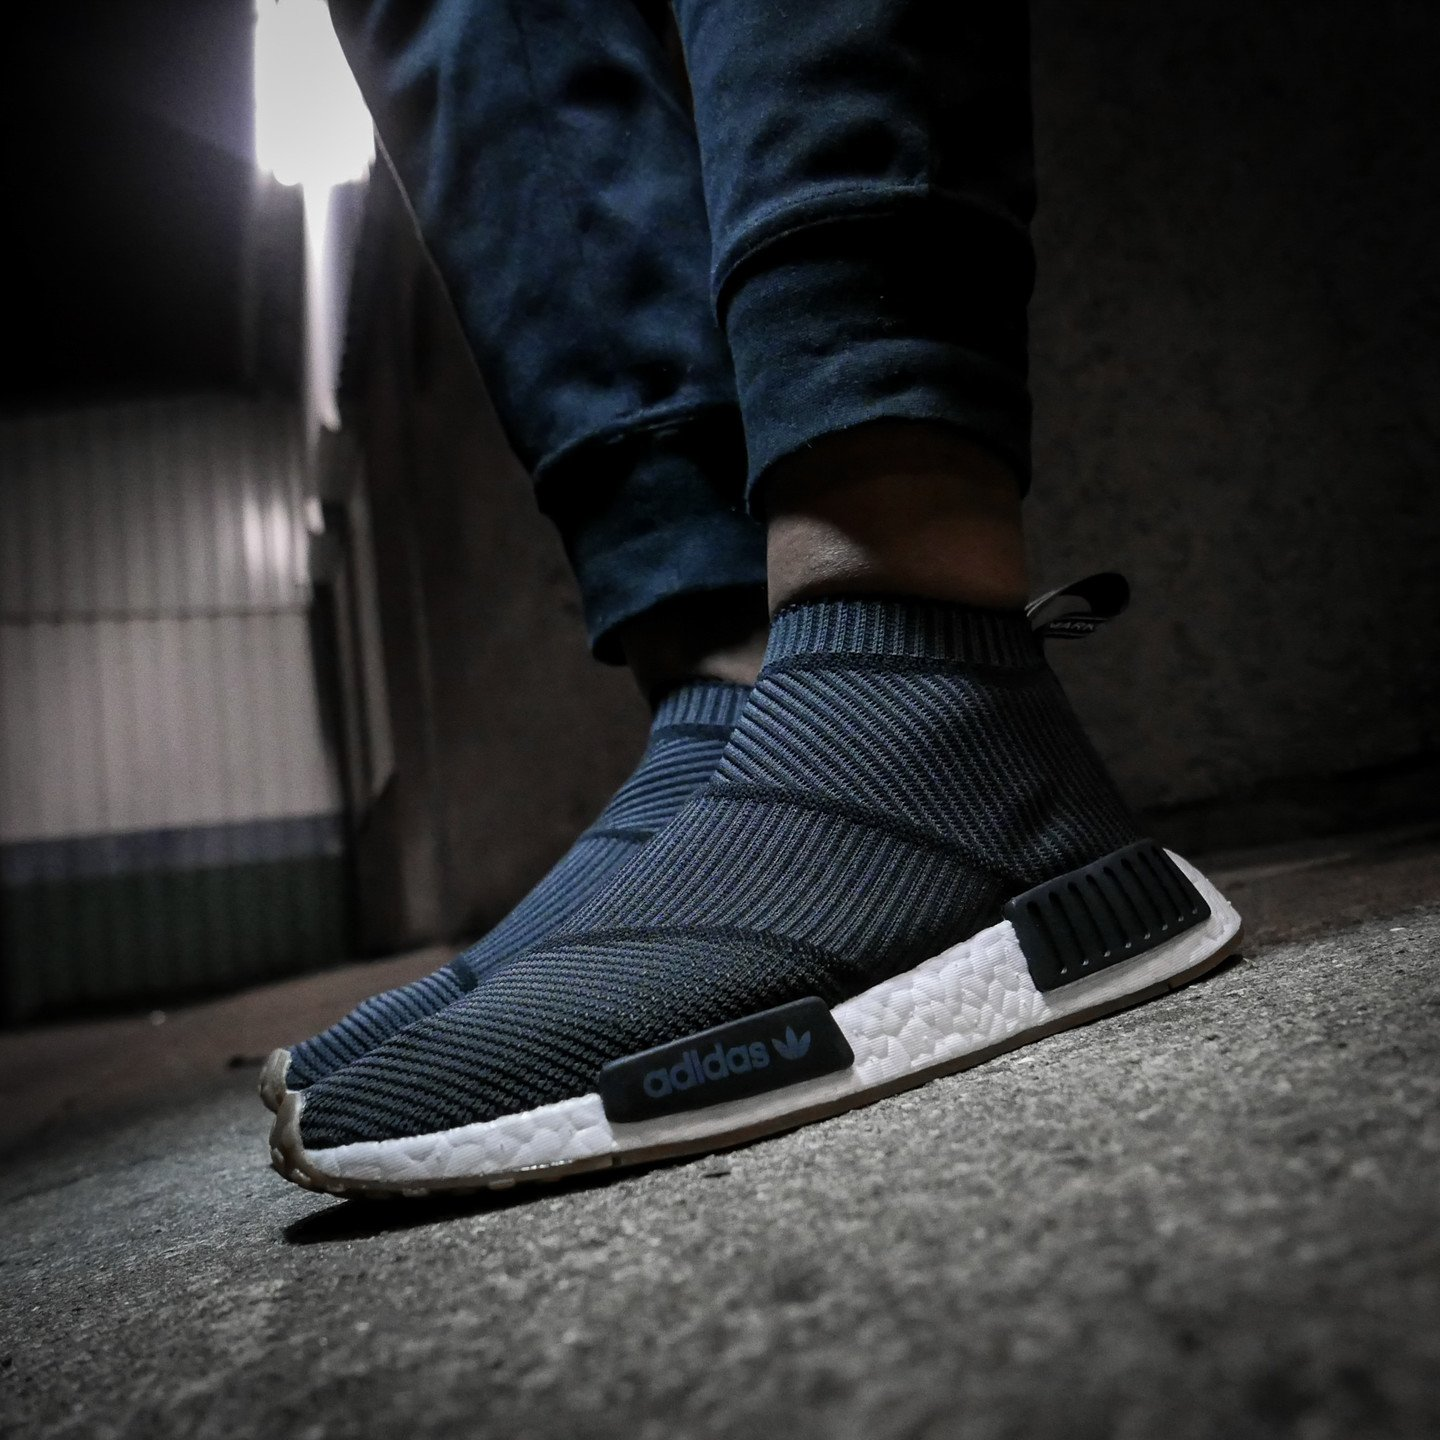 Adidas NMD CS1 City Sock Boost Primeknit Core Black / Gum BA7209-40